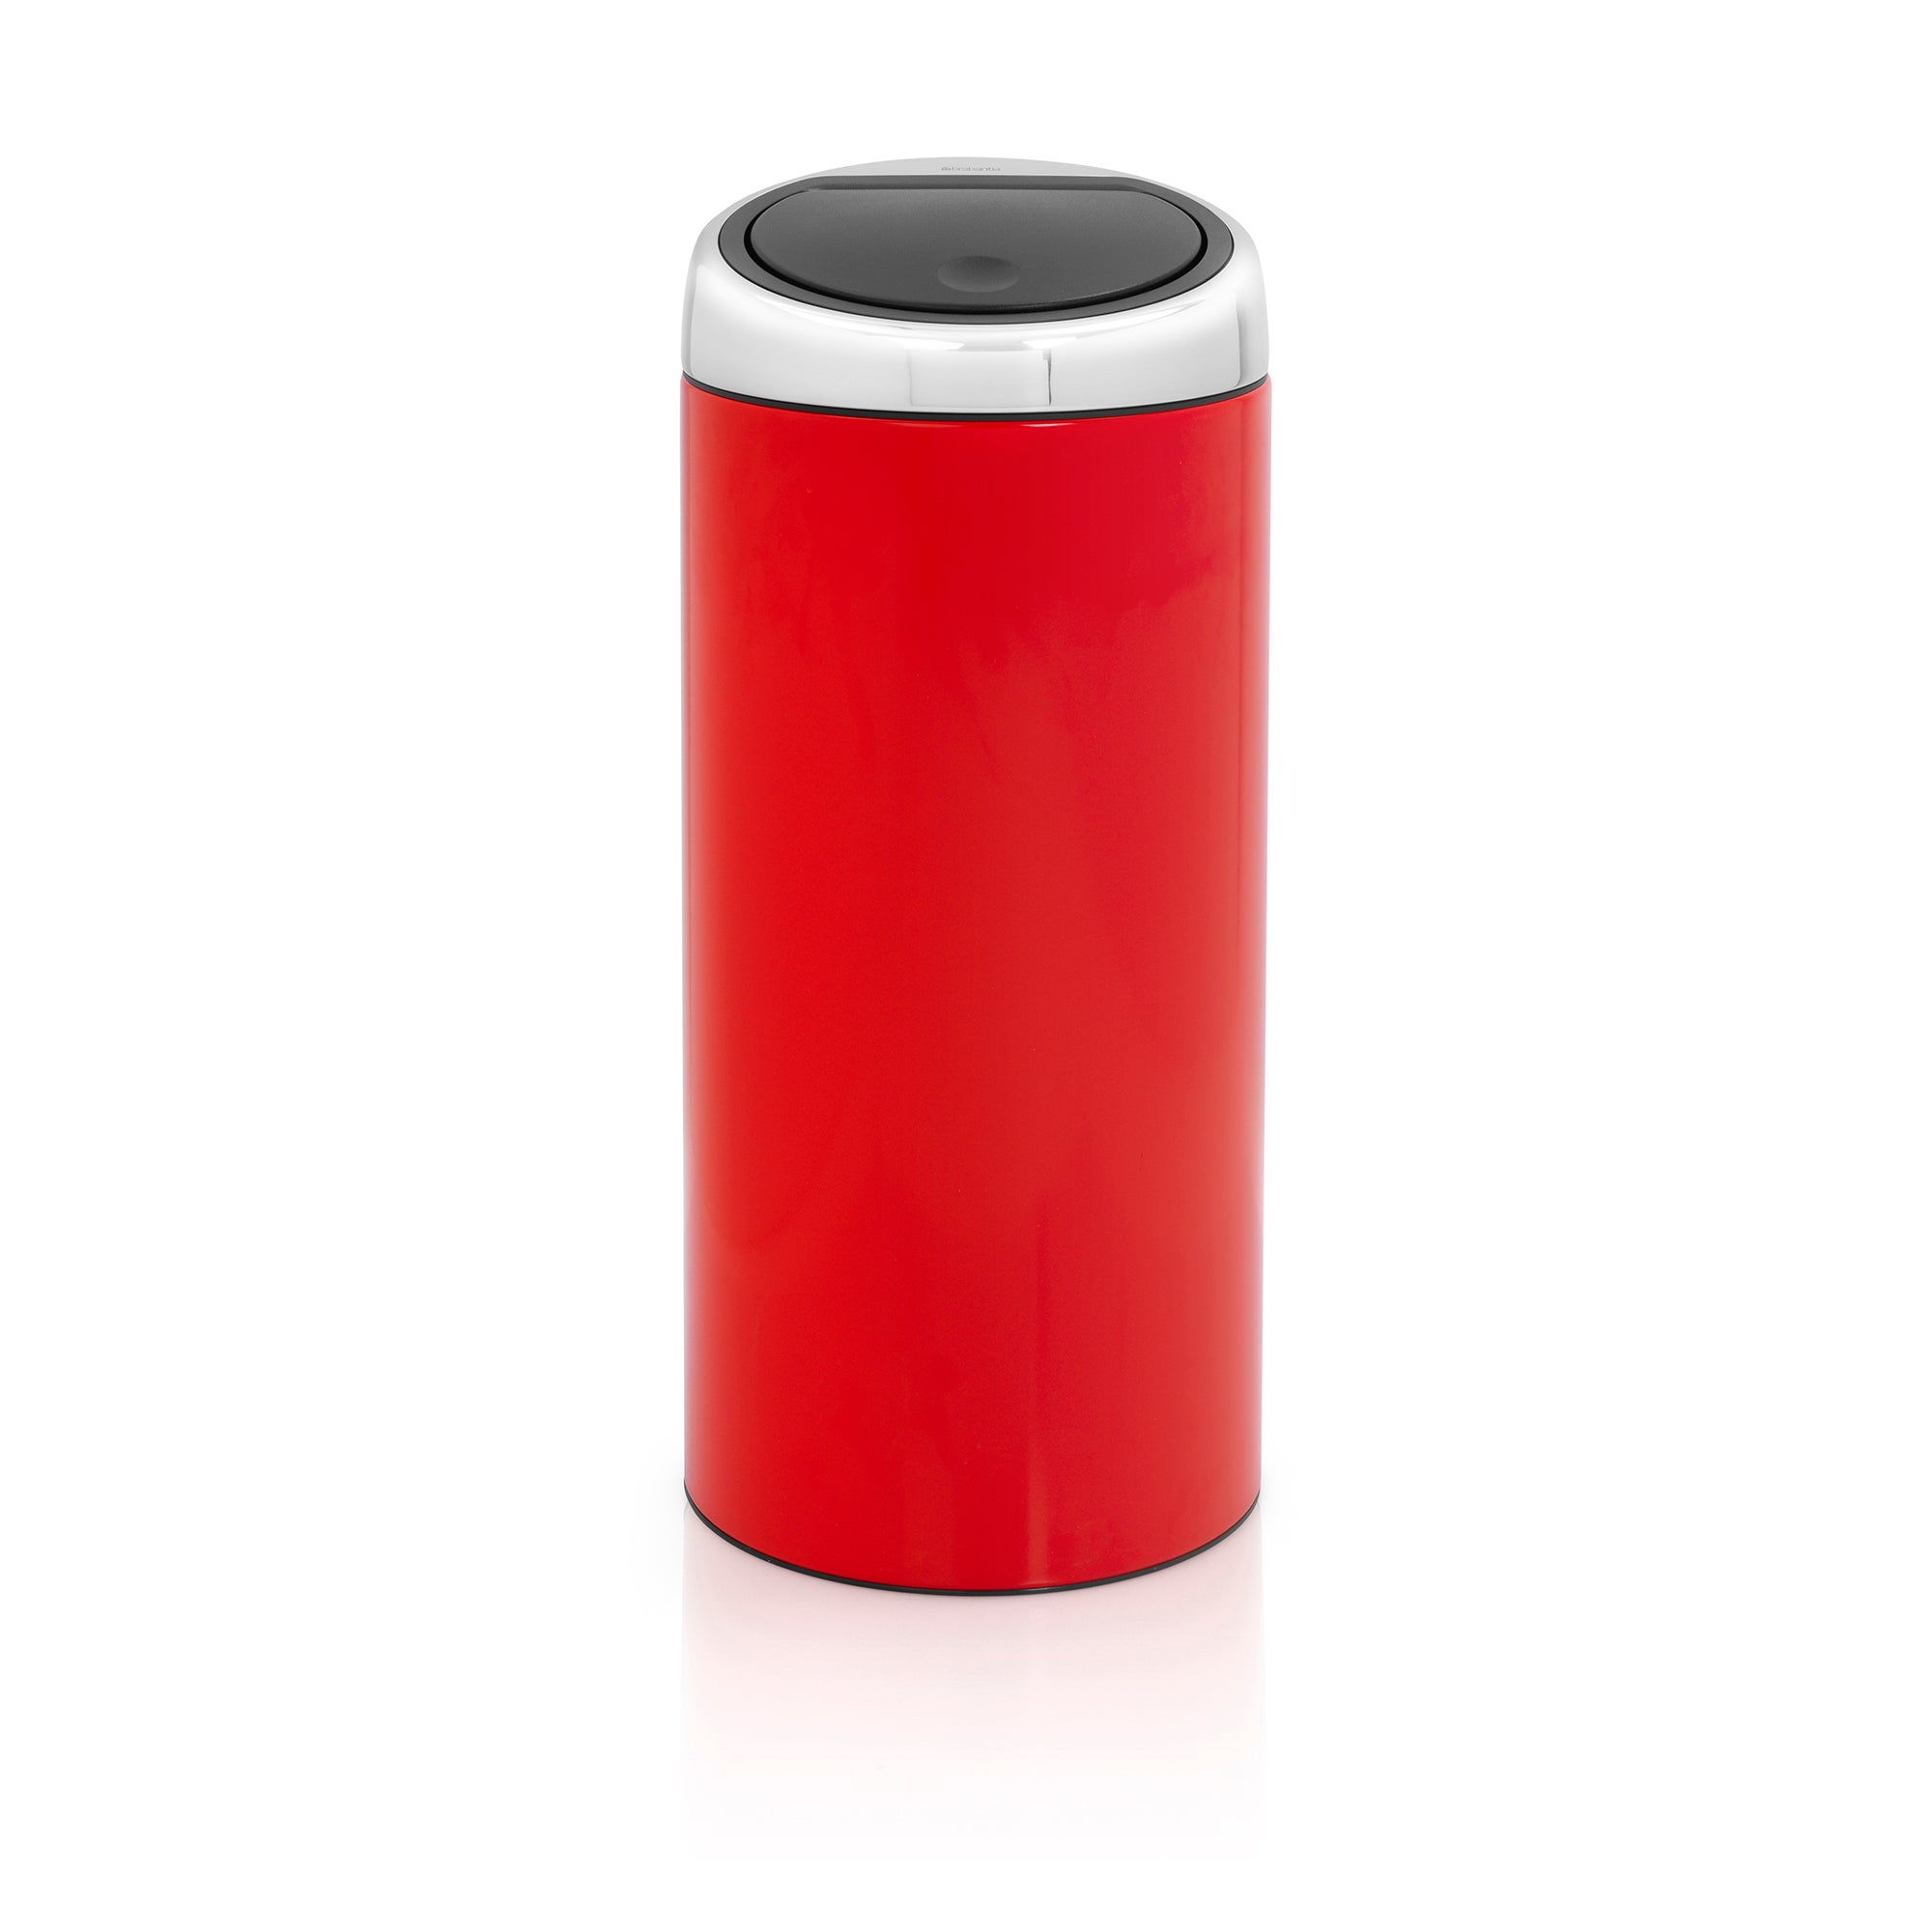 Brabantia Red 30 Litre Lacquered Steel Touch Bin